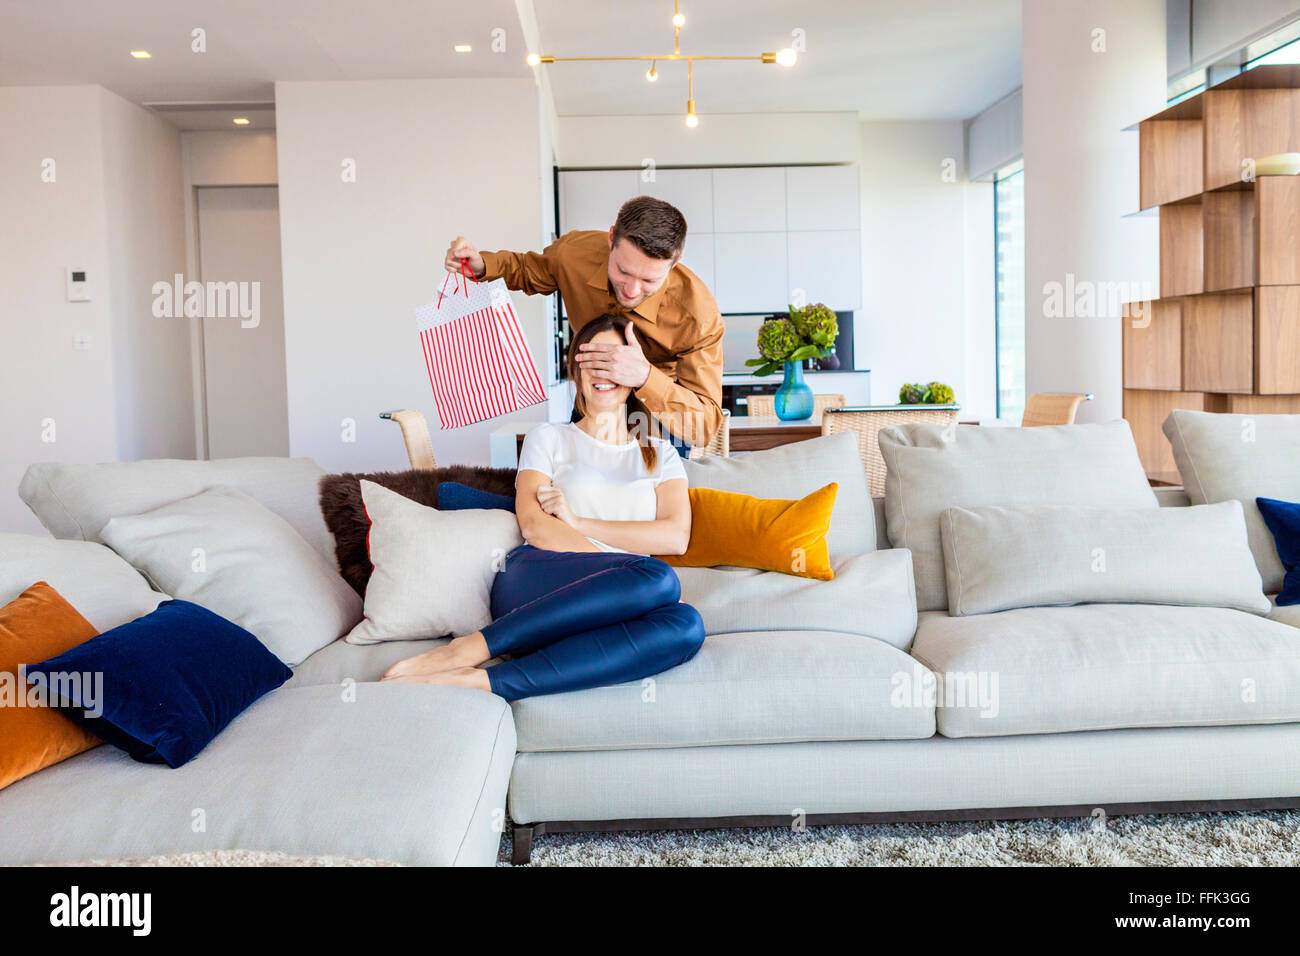 Couple relaxing in modern apartment - Stock Image